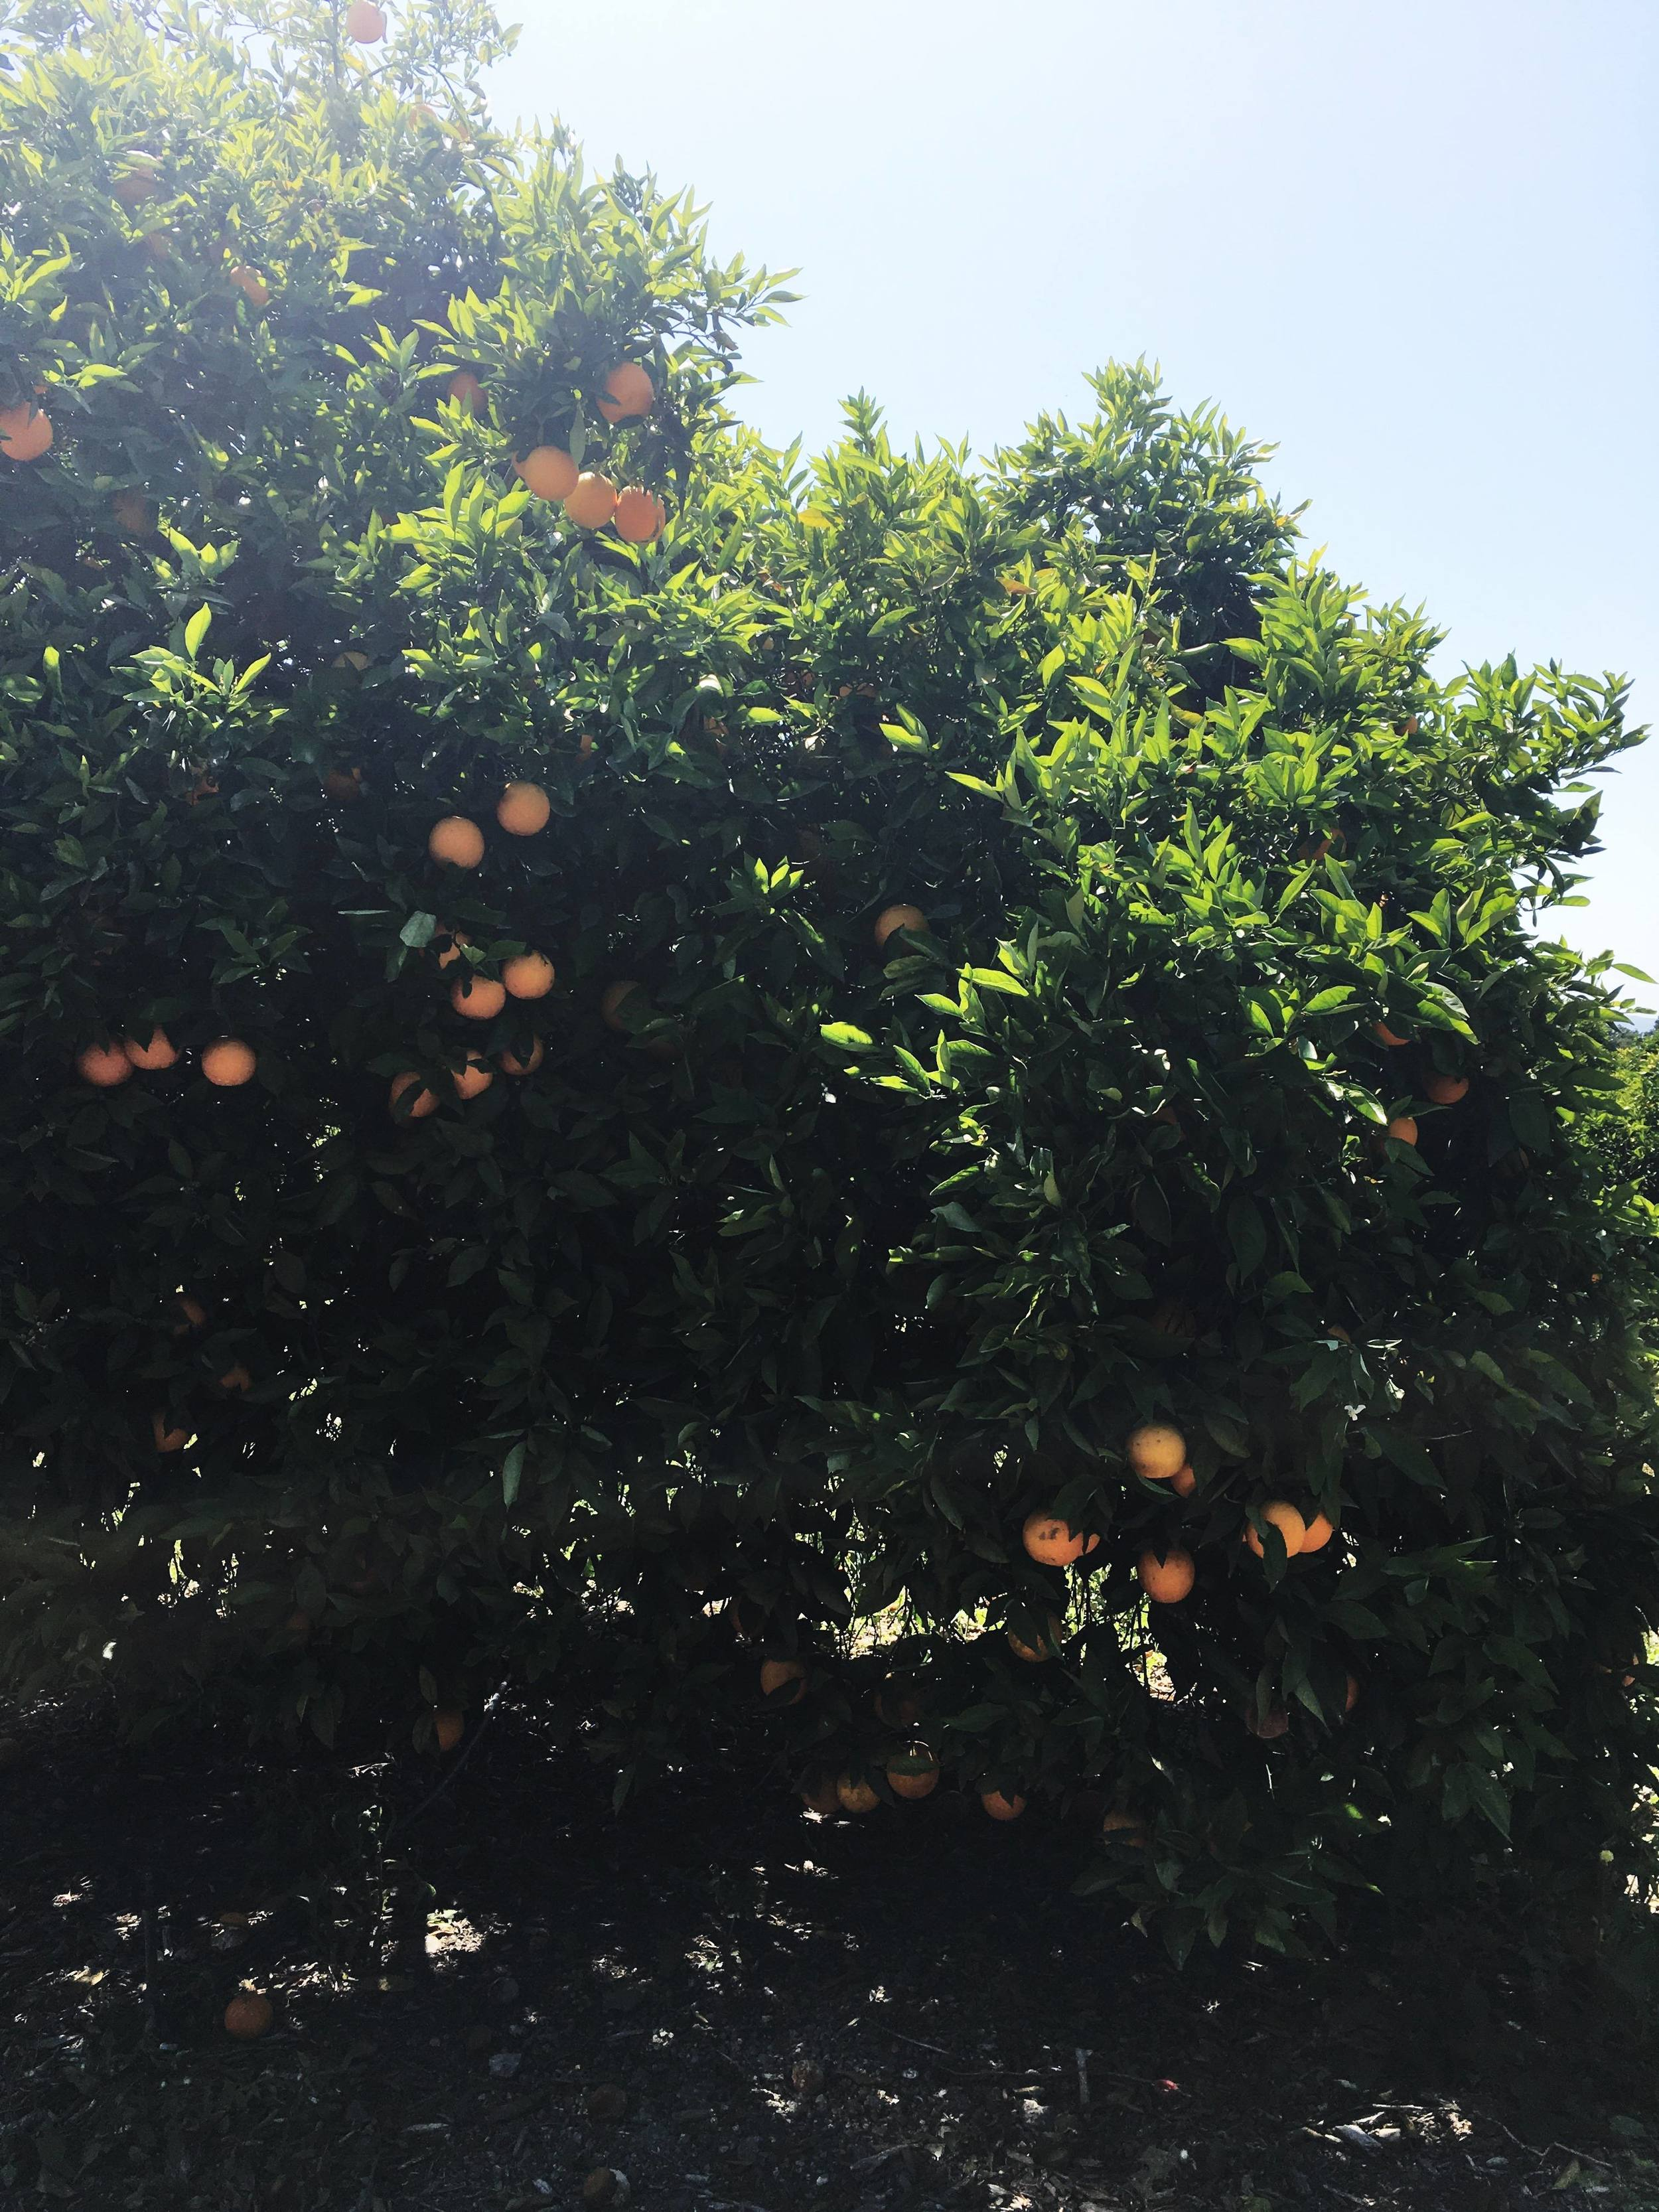 A Sunkist orange grove. There's rows and rows and rows of trees.